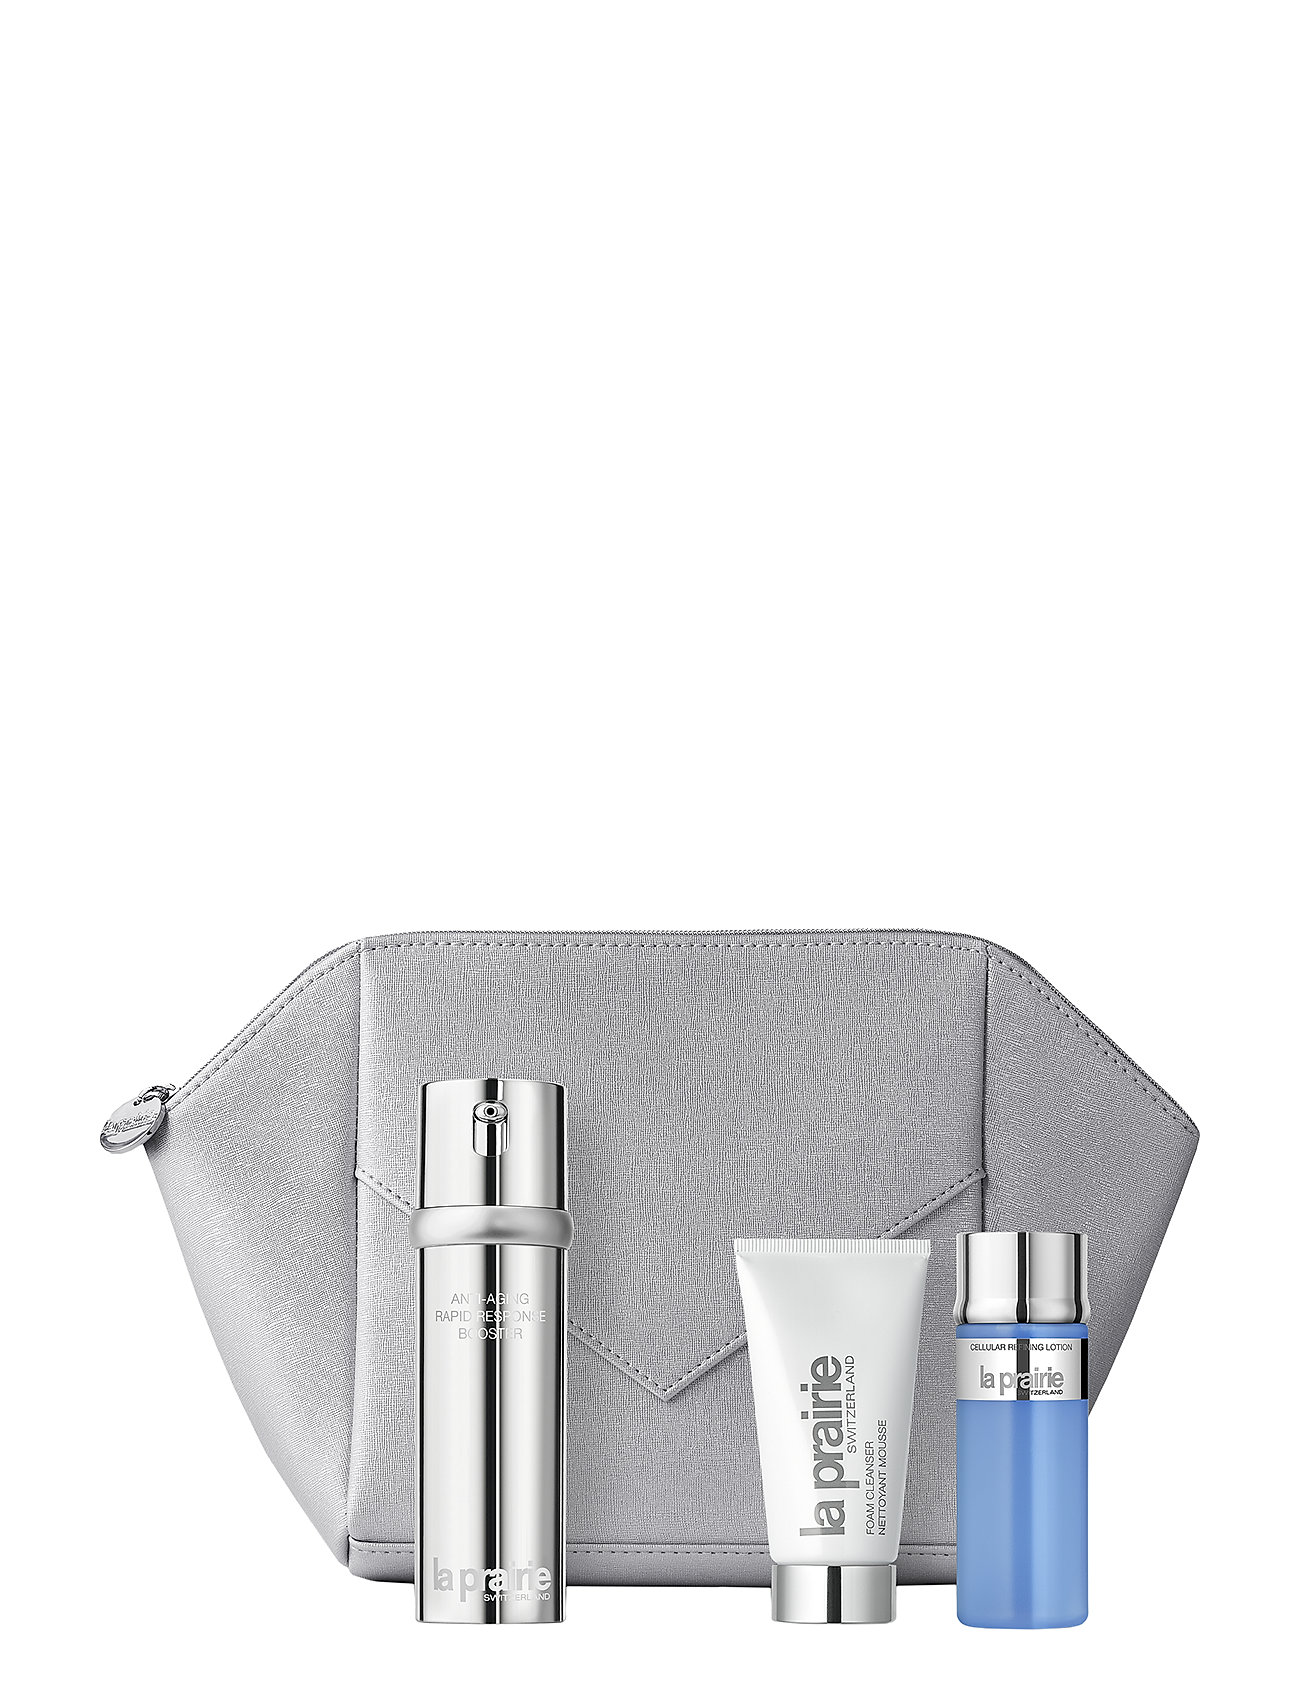 La Prairie KITS AA KIT,BOOSTER,FOAM,REF LOTION - NO COLOR